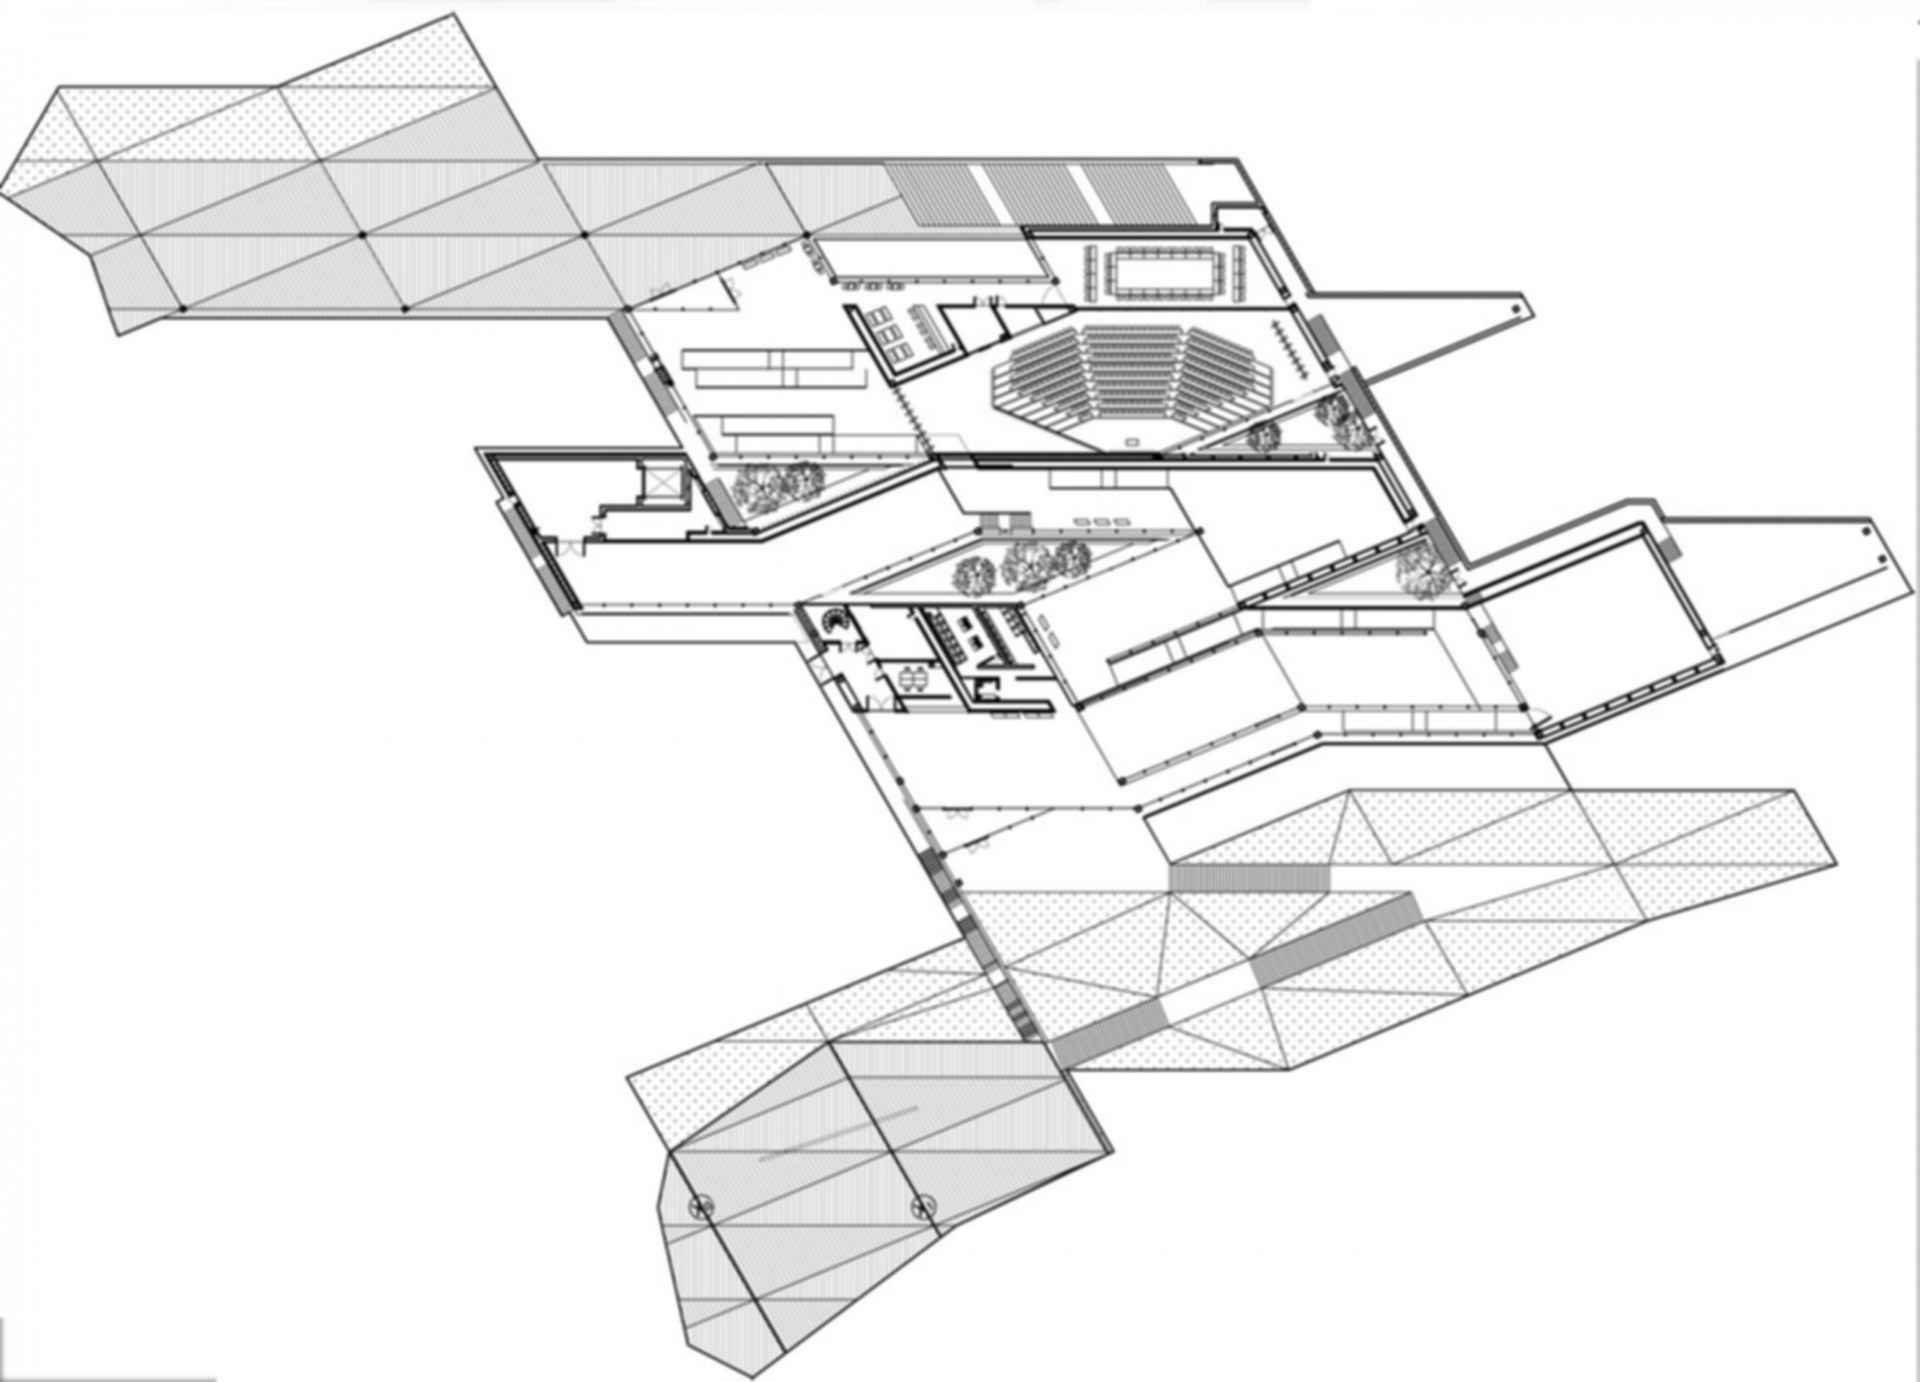 China Academy of Art's Folk Art Museum - Floor Plan